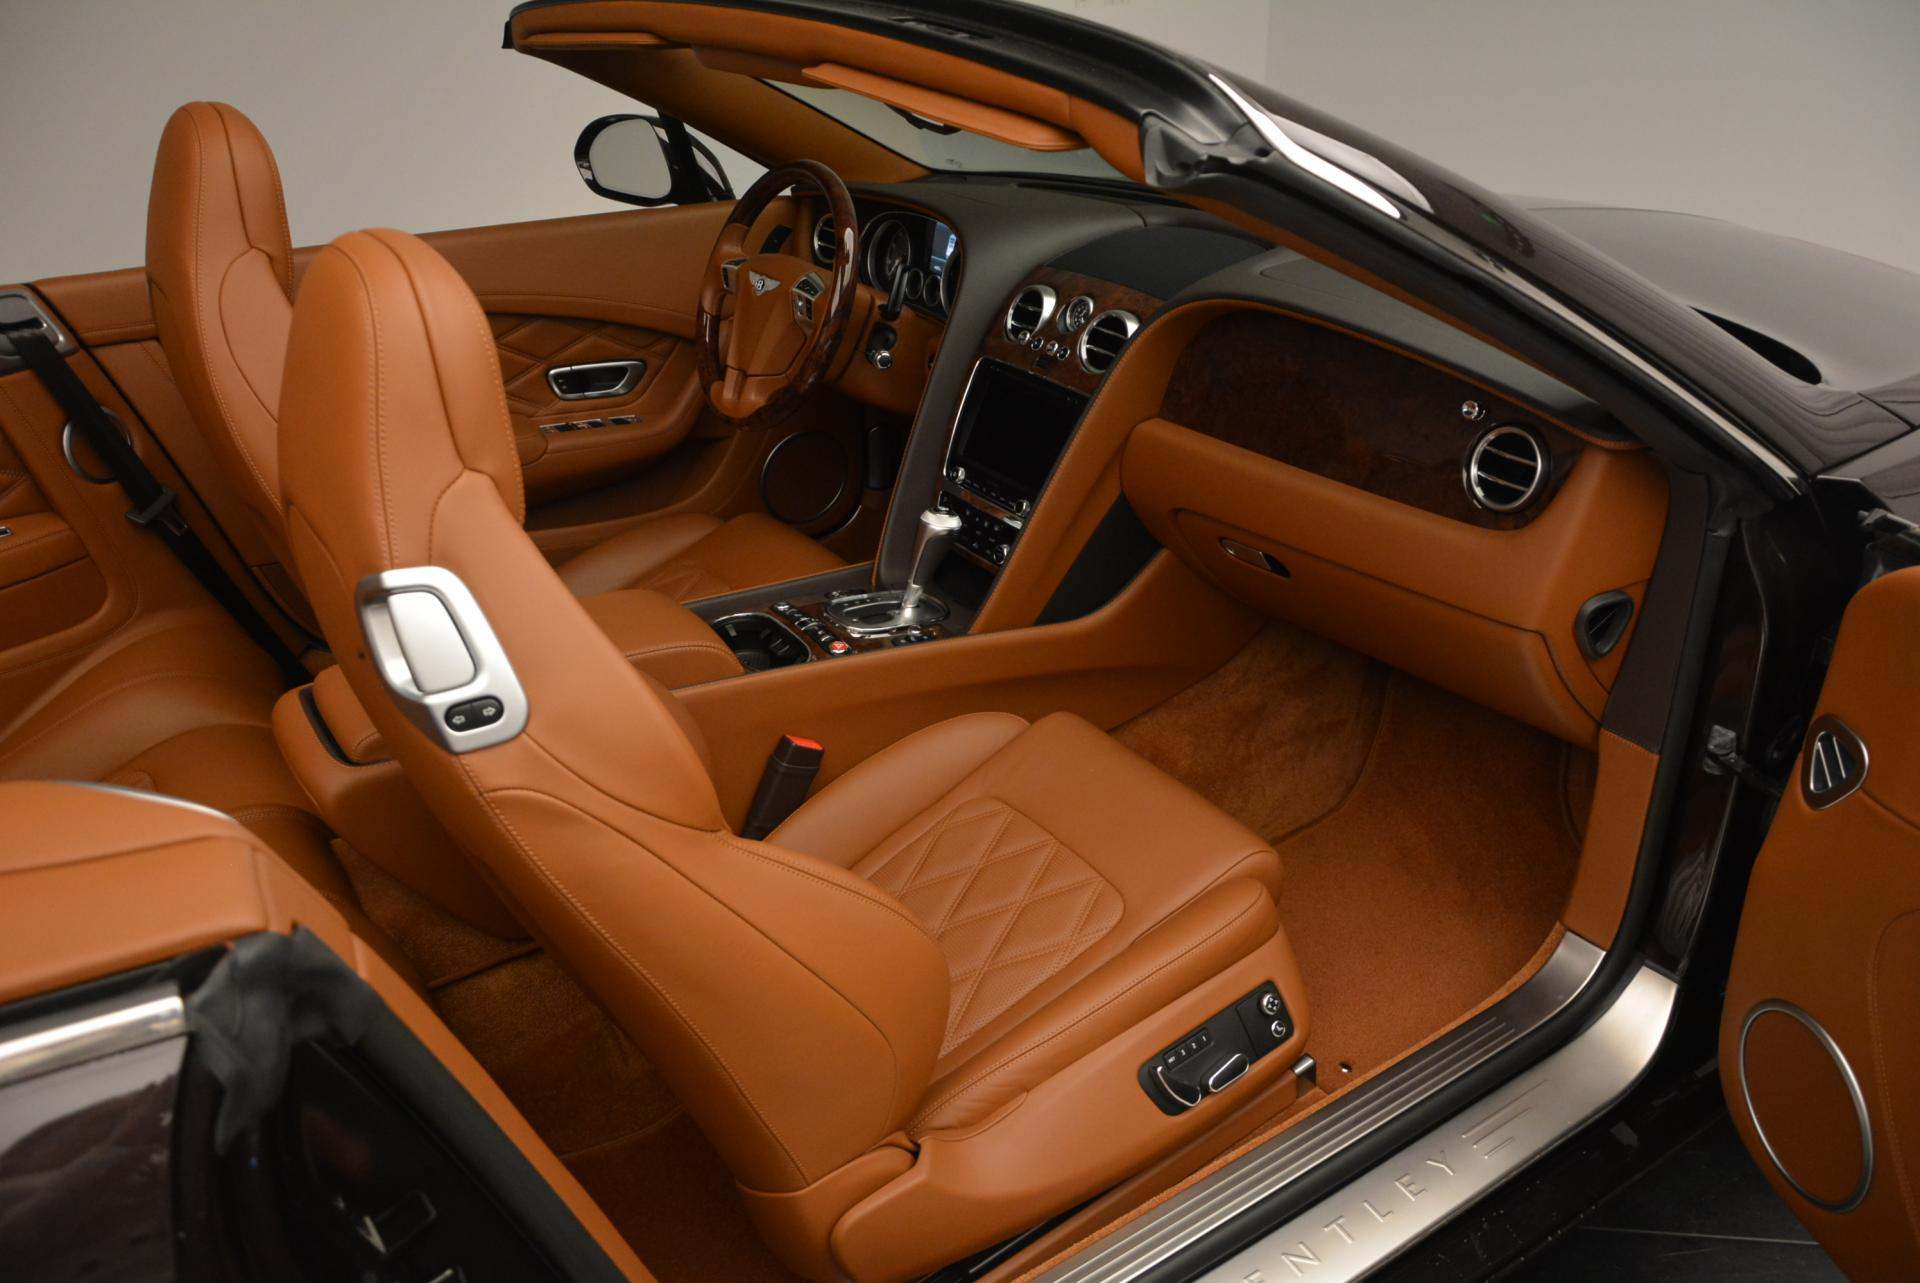 Used 2013 Bentley Continental GTC V8  For Sale In Greenwich, CT. Alfa Romeo of Greenwich, 7059 498_p48